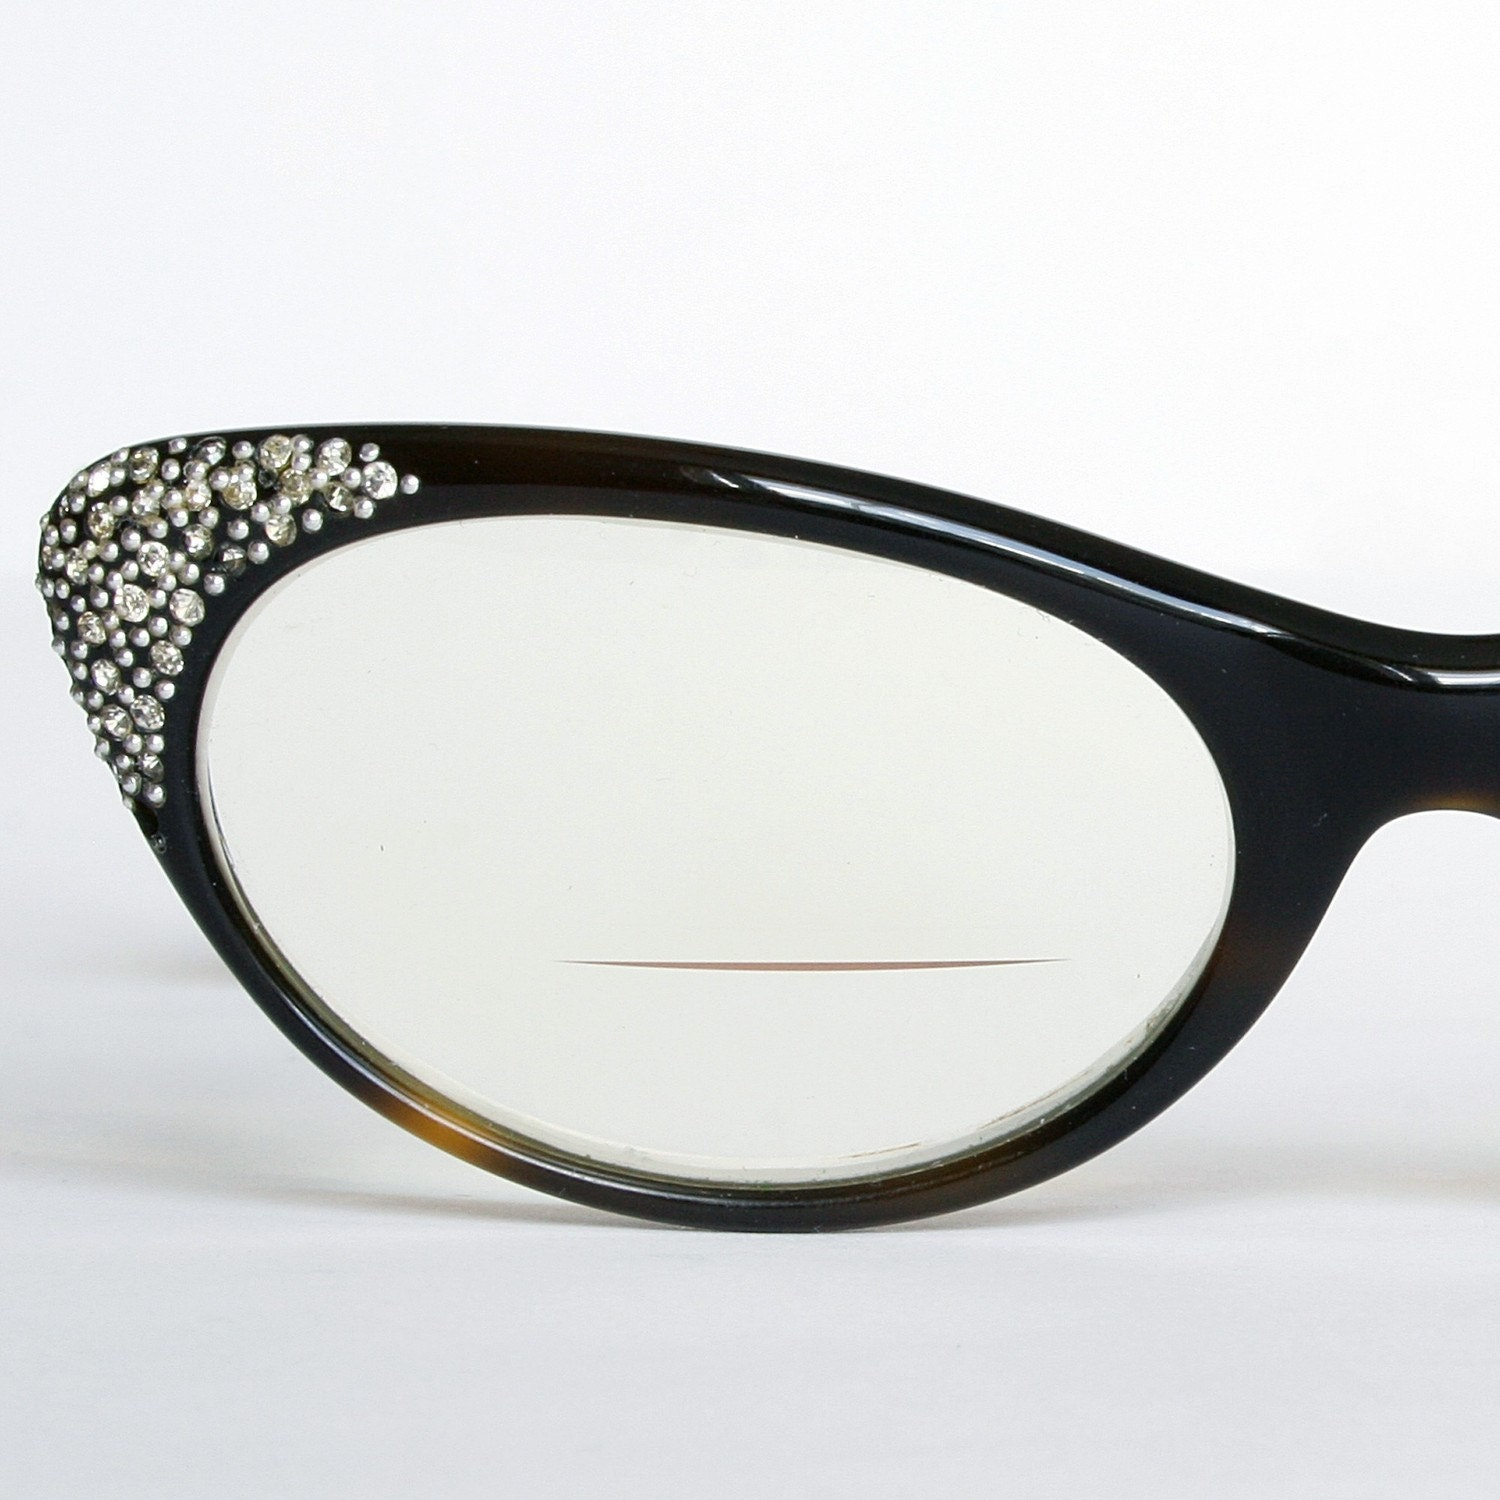 Eyeglasses Frames With Bling : Rhinestone Studded Cat Eye Glasses Frames by ...